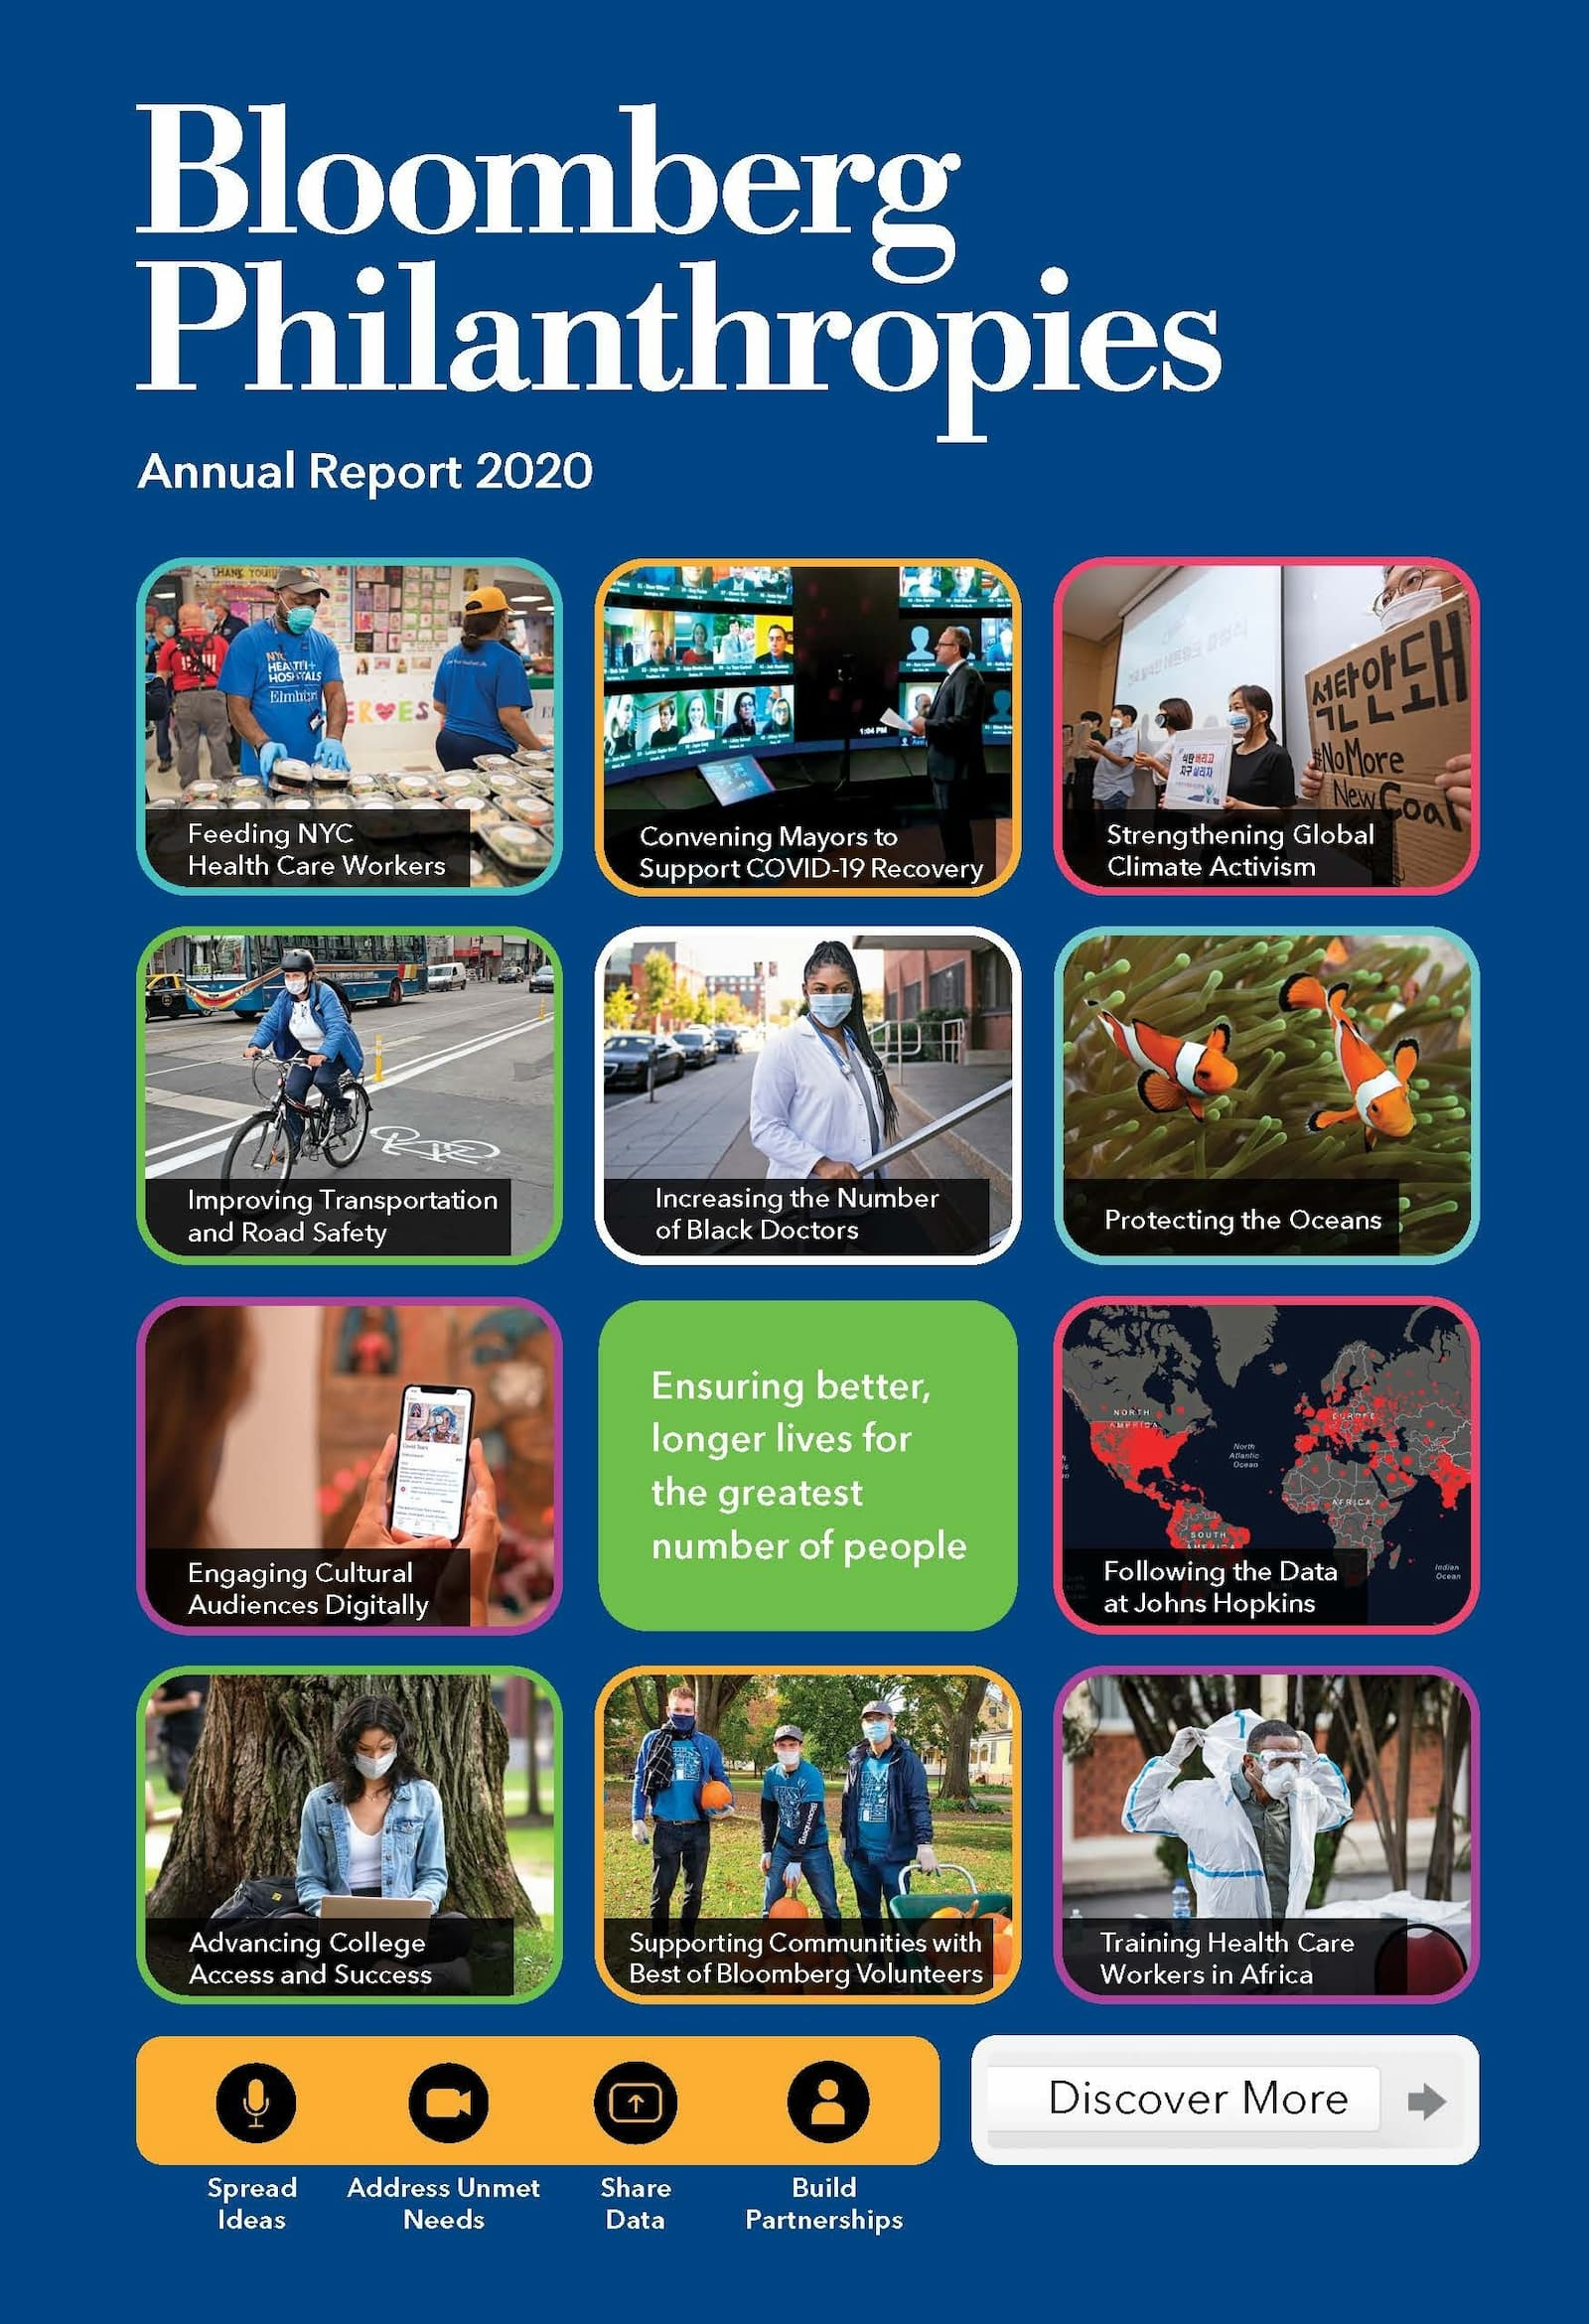 The cover of the 2020 Bloomberg Philanthropies Annual Report.